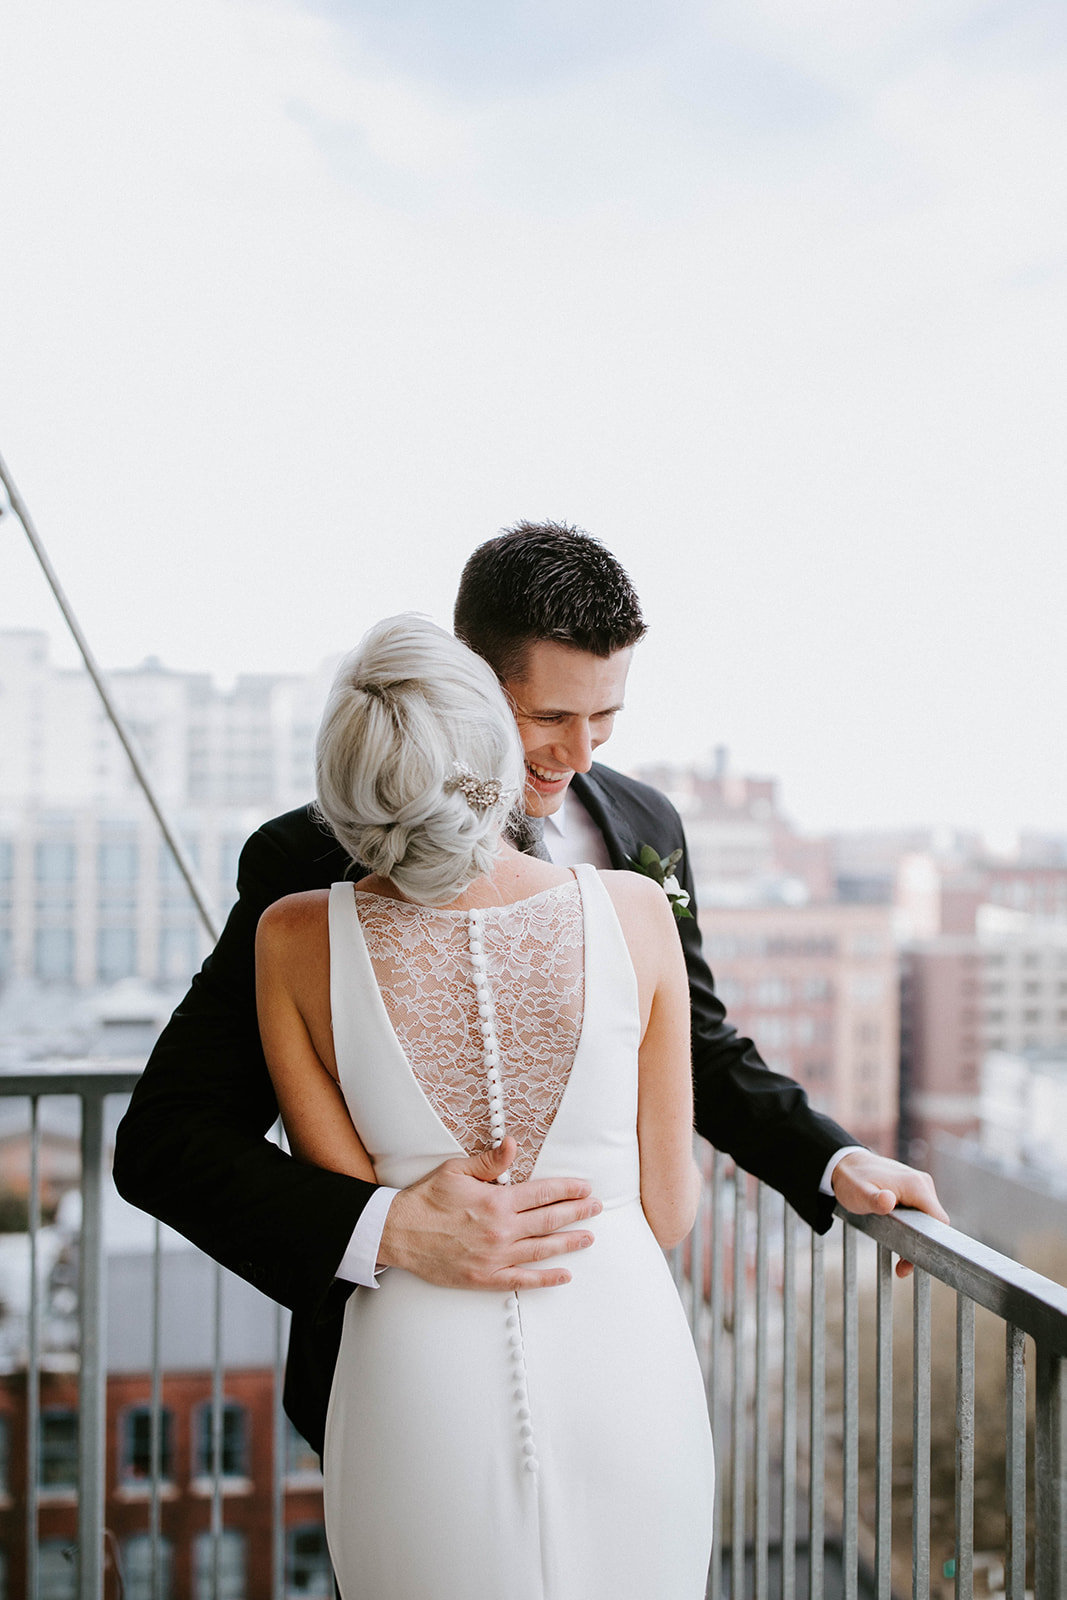 A bride and groom embrace on a balcony.